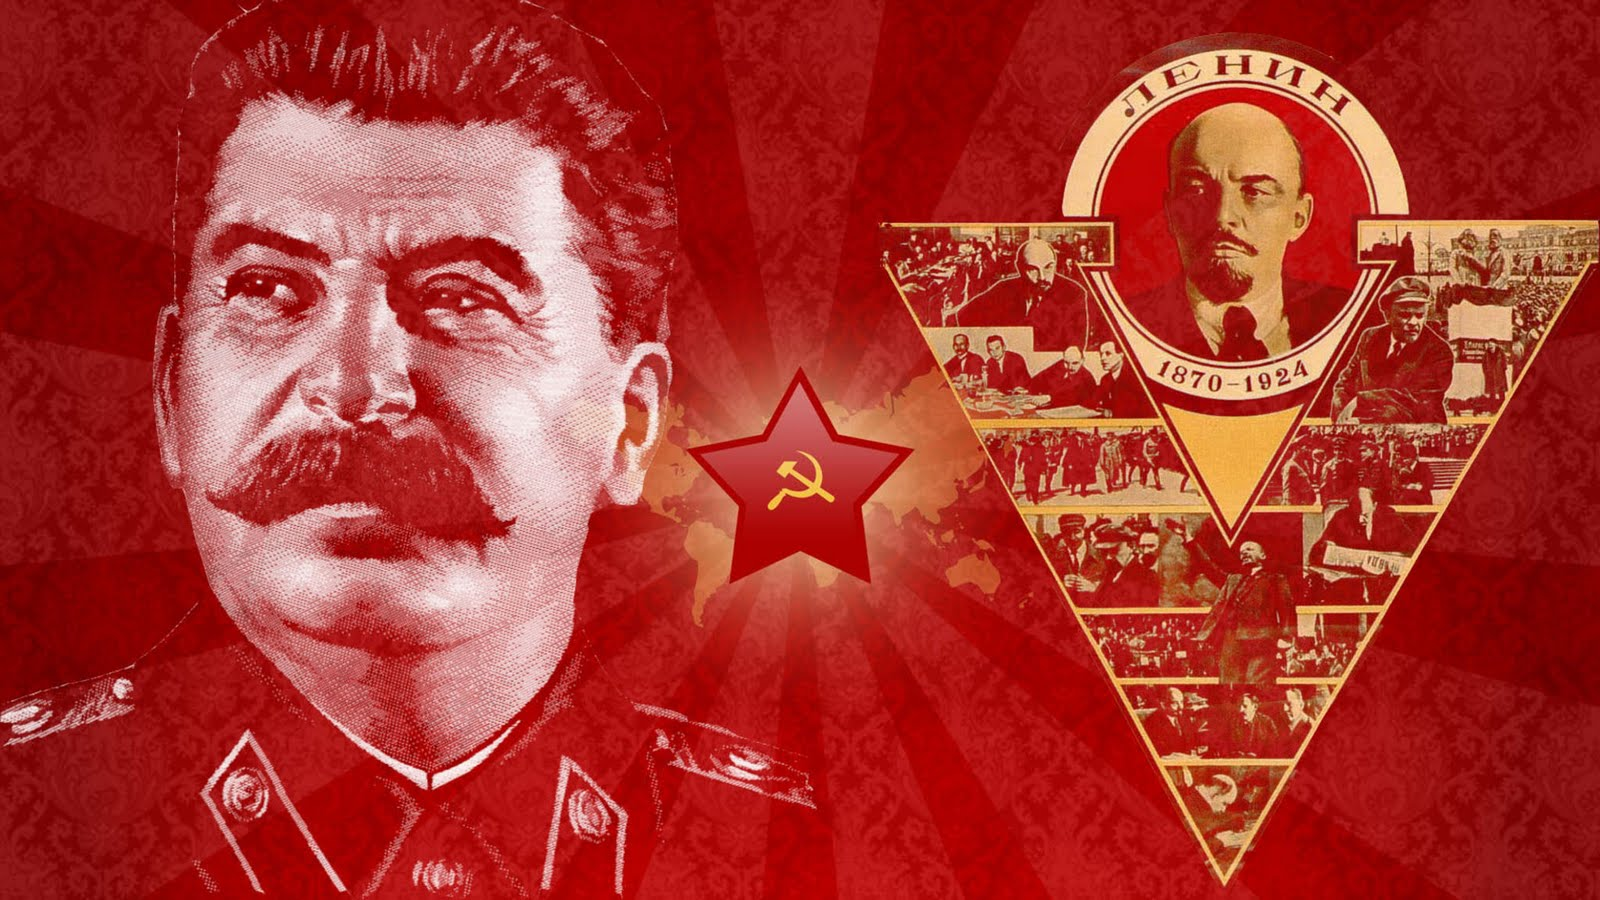 joseph stalin essay the total dictatorship of joseph stalin essay  stalin new biography of a dictator by oleg v khlevniuk stalin poster